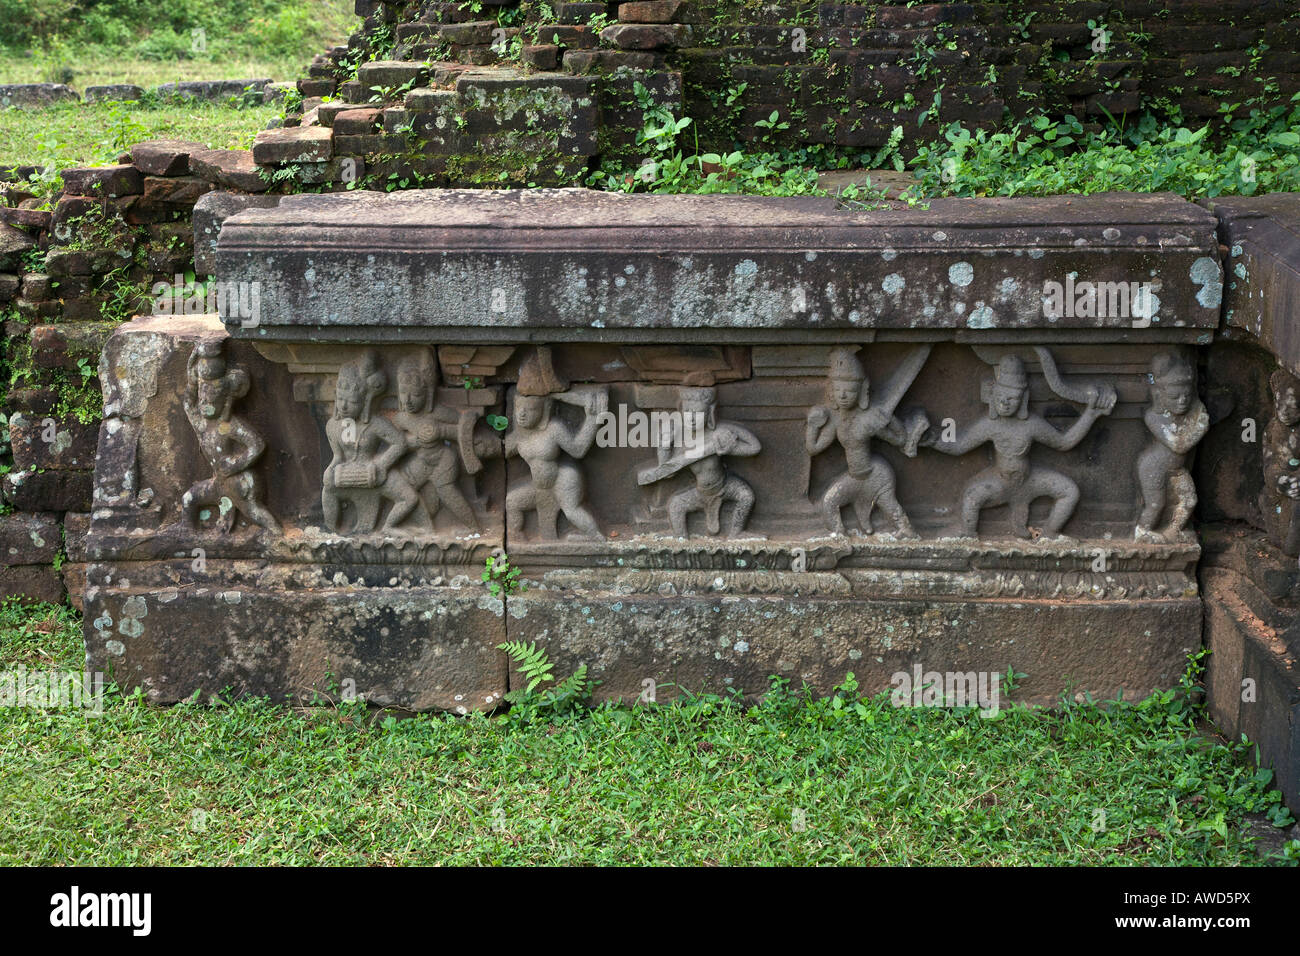 Ancient CHAM STONE CARVINGS decorate the surface of the stone foundations of the TEMPLES at the CHIEN DANG RUINS - Stock Image